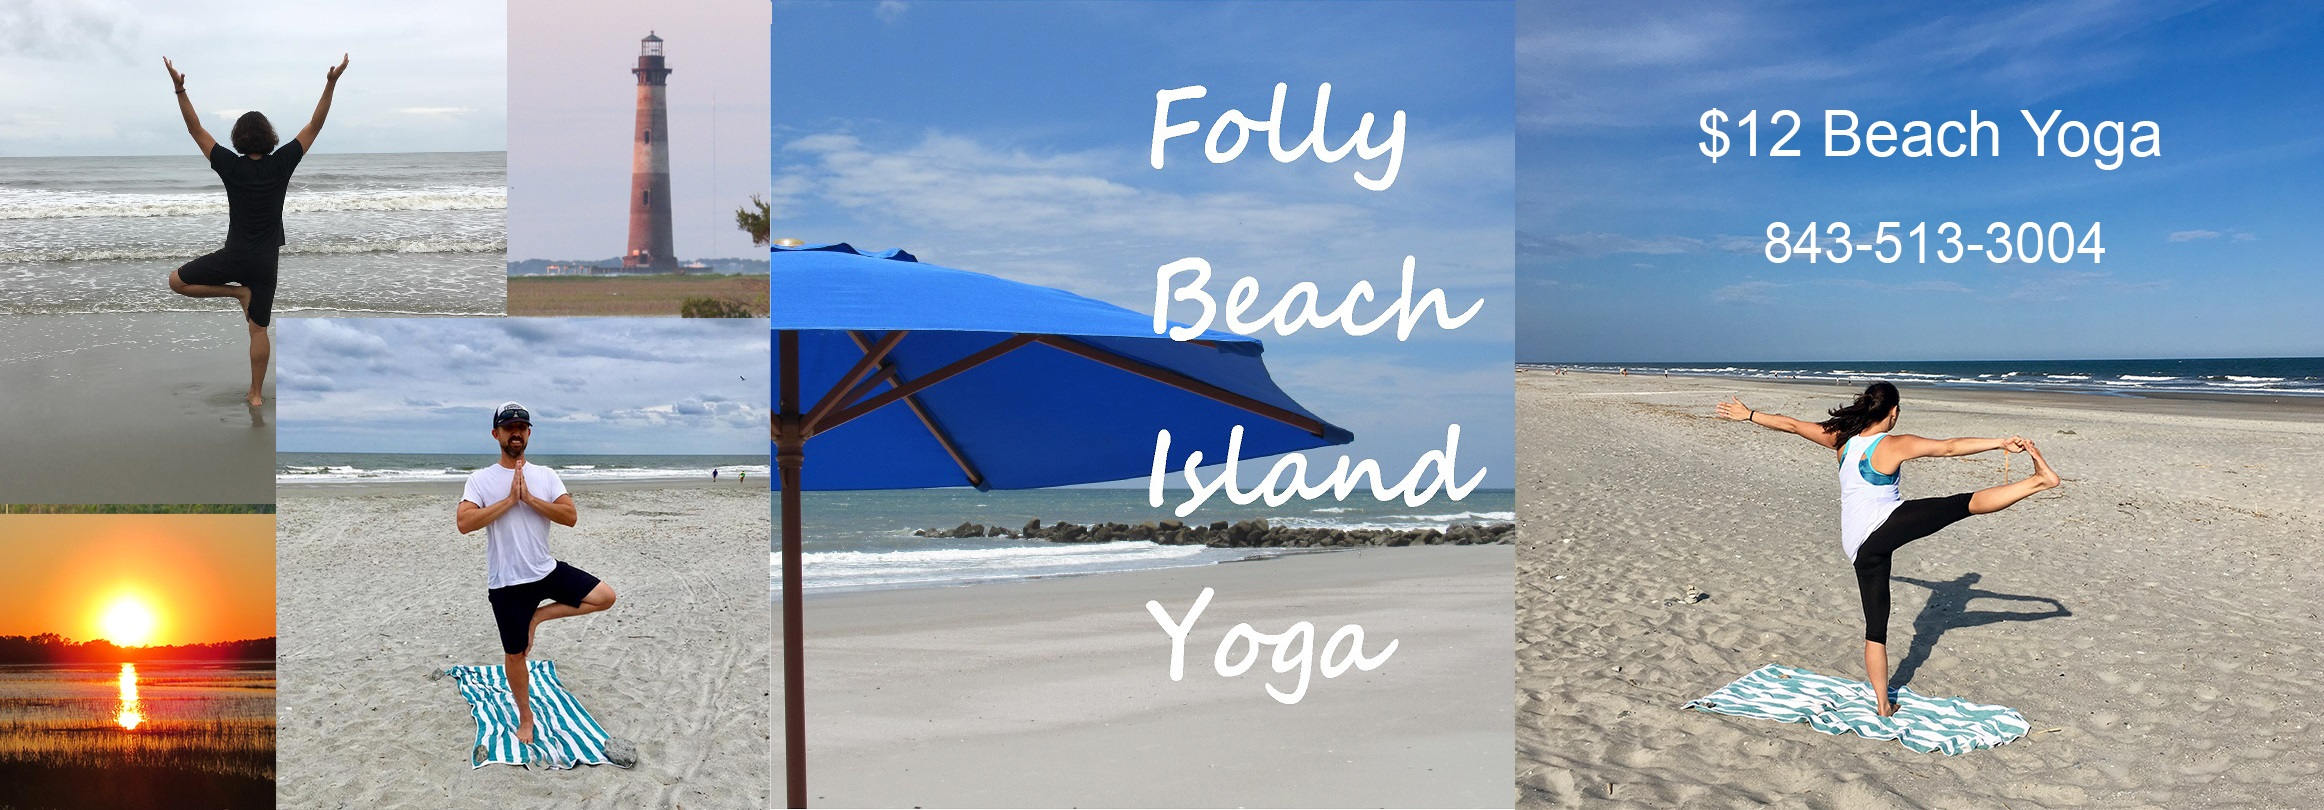 Yoga Class Classes Things to Do Folly Beach Charleston